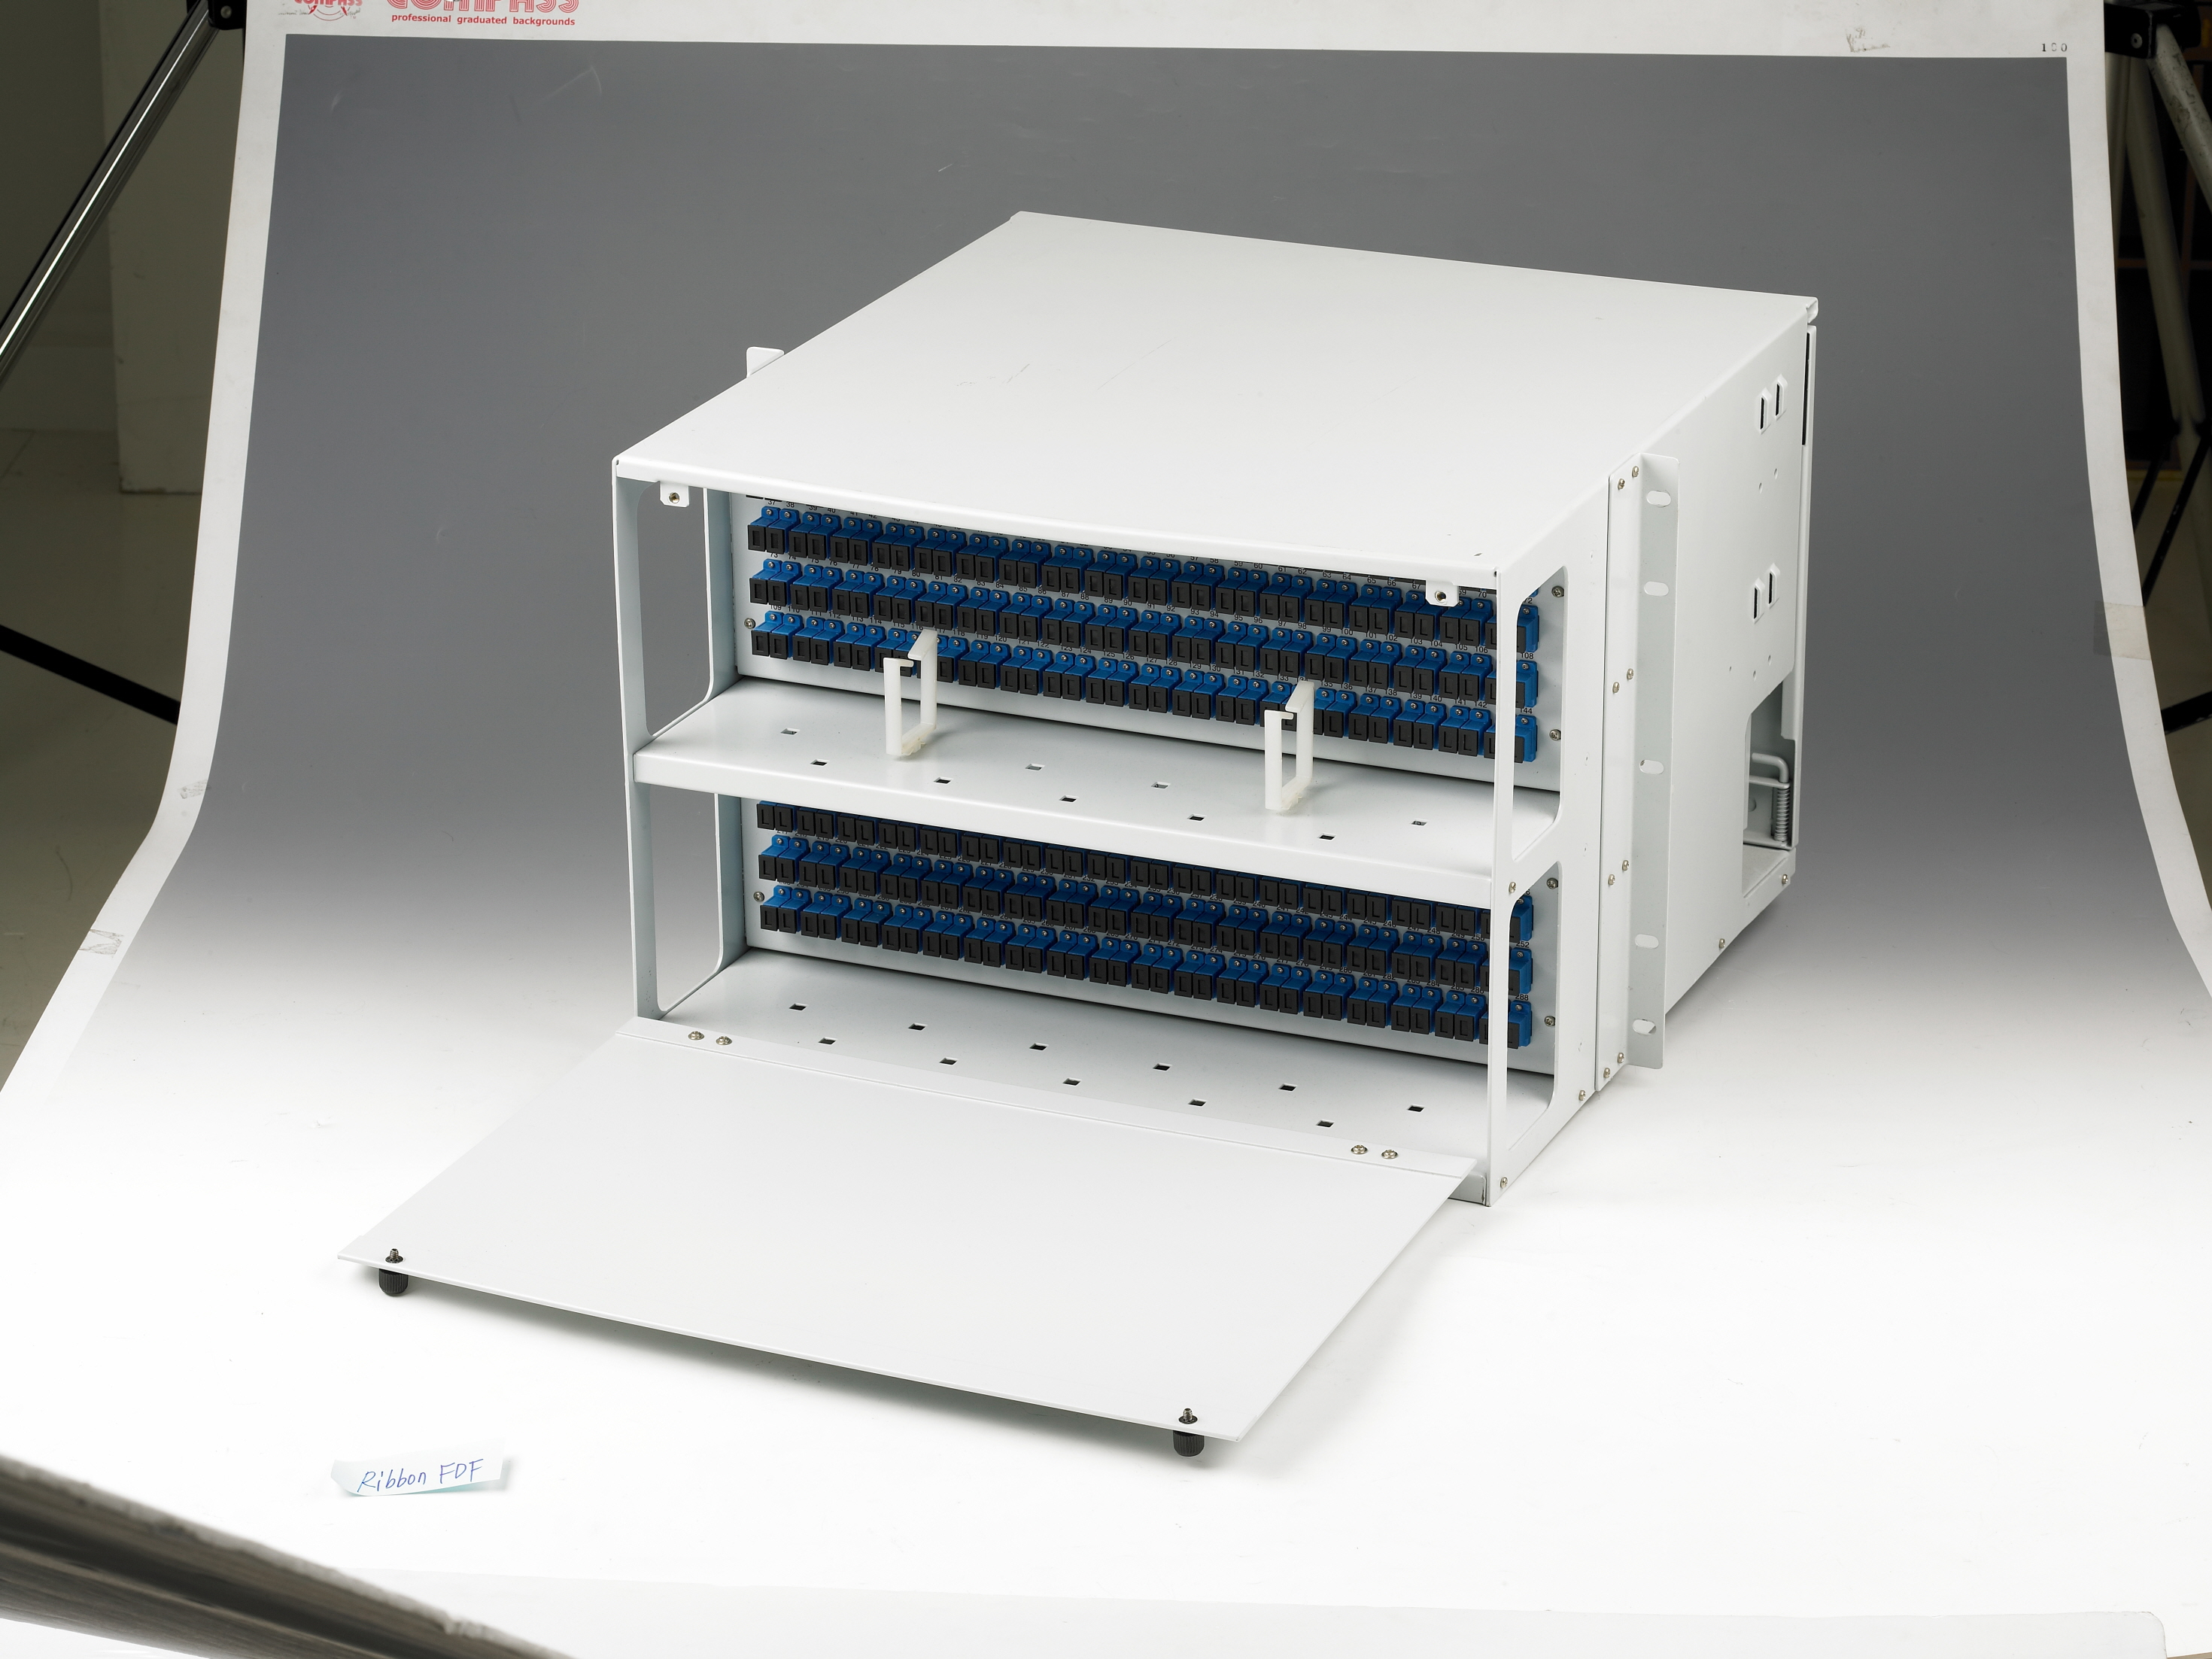 ODF stands for Optical Distribution Frame for the indoor cable management from cable outdoor. This terminates the cables